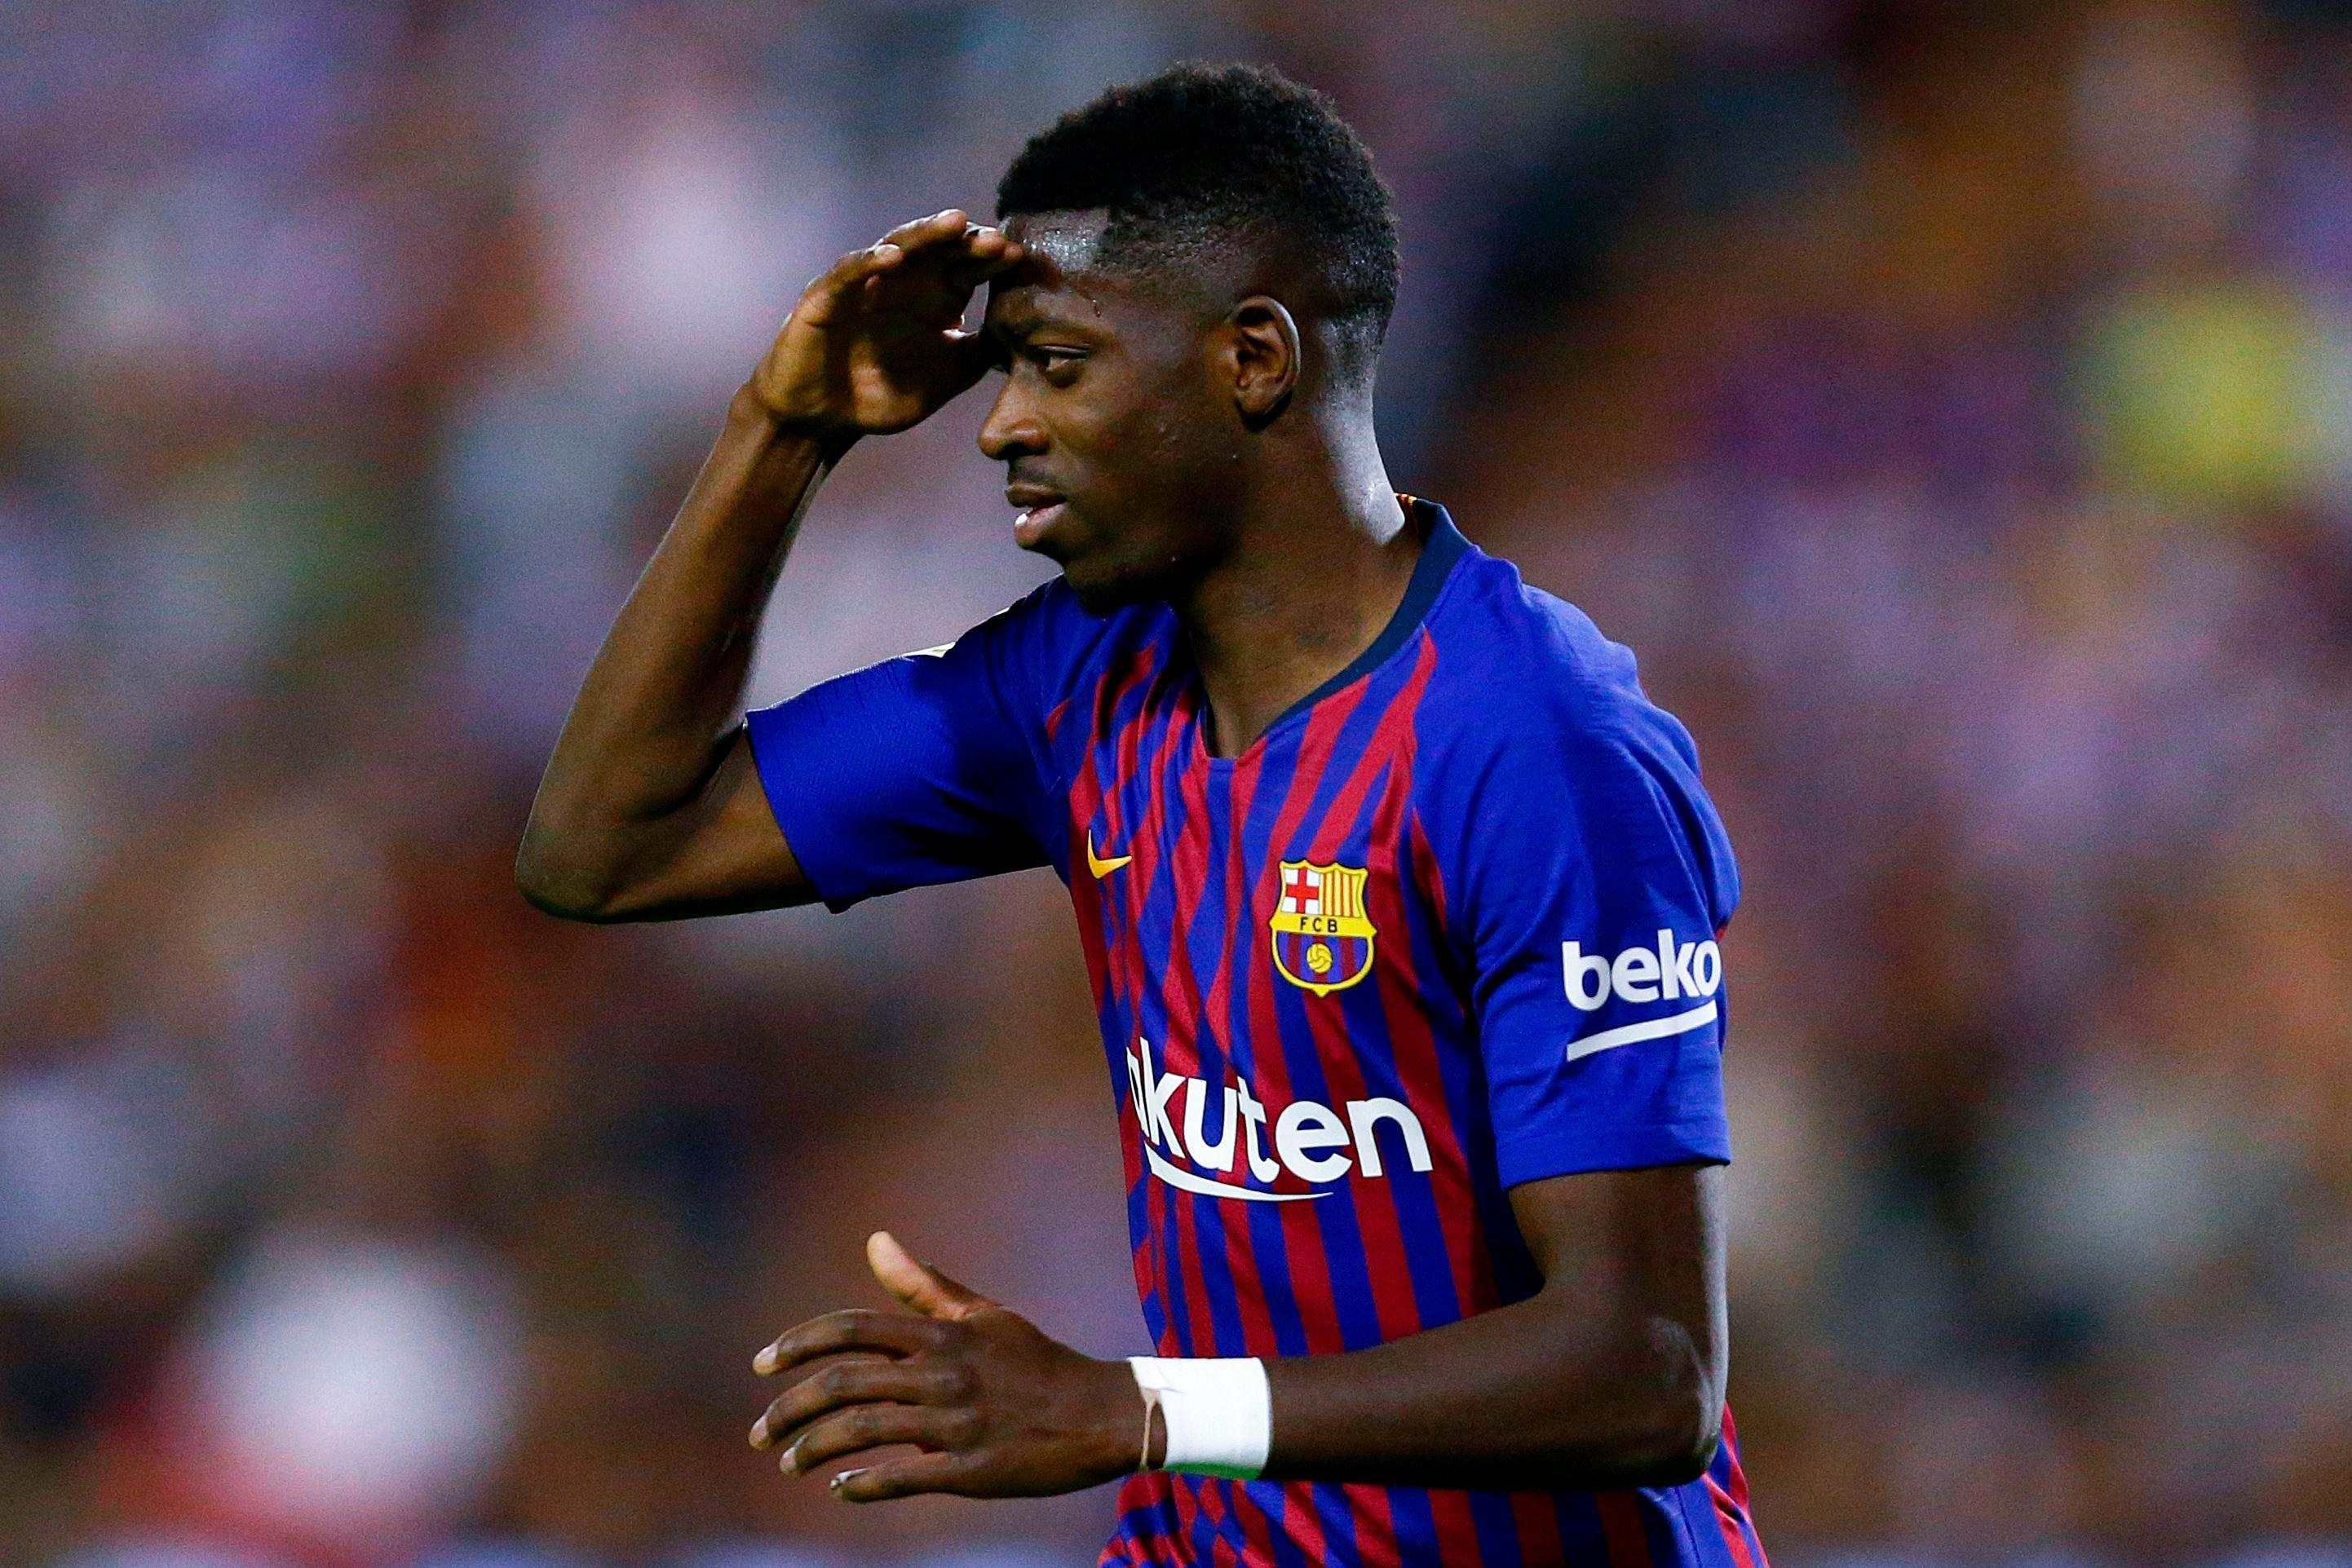 Ousmane Dembele could be on the hunt for a new club after Barcelona said the player can leave in January